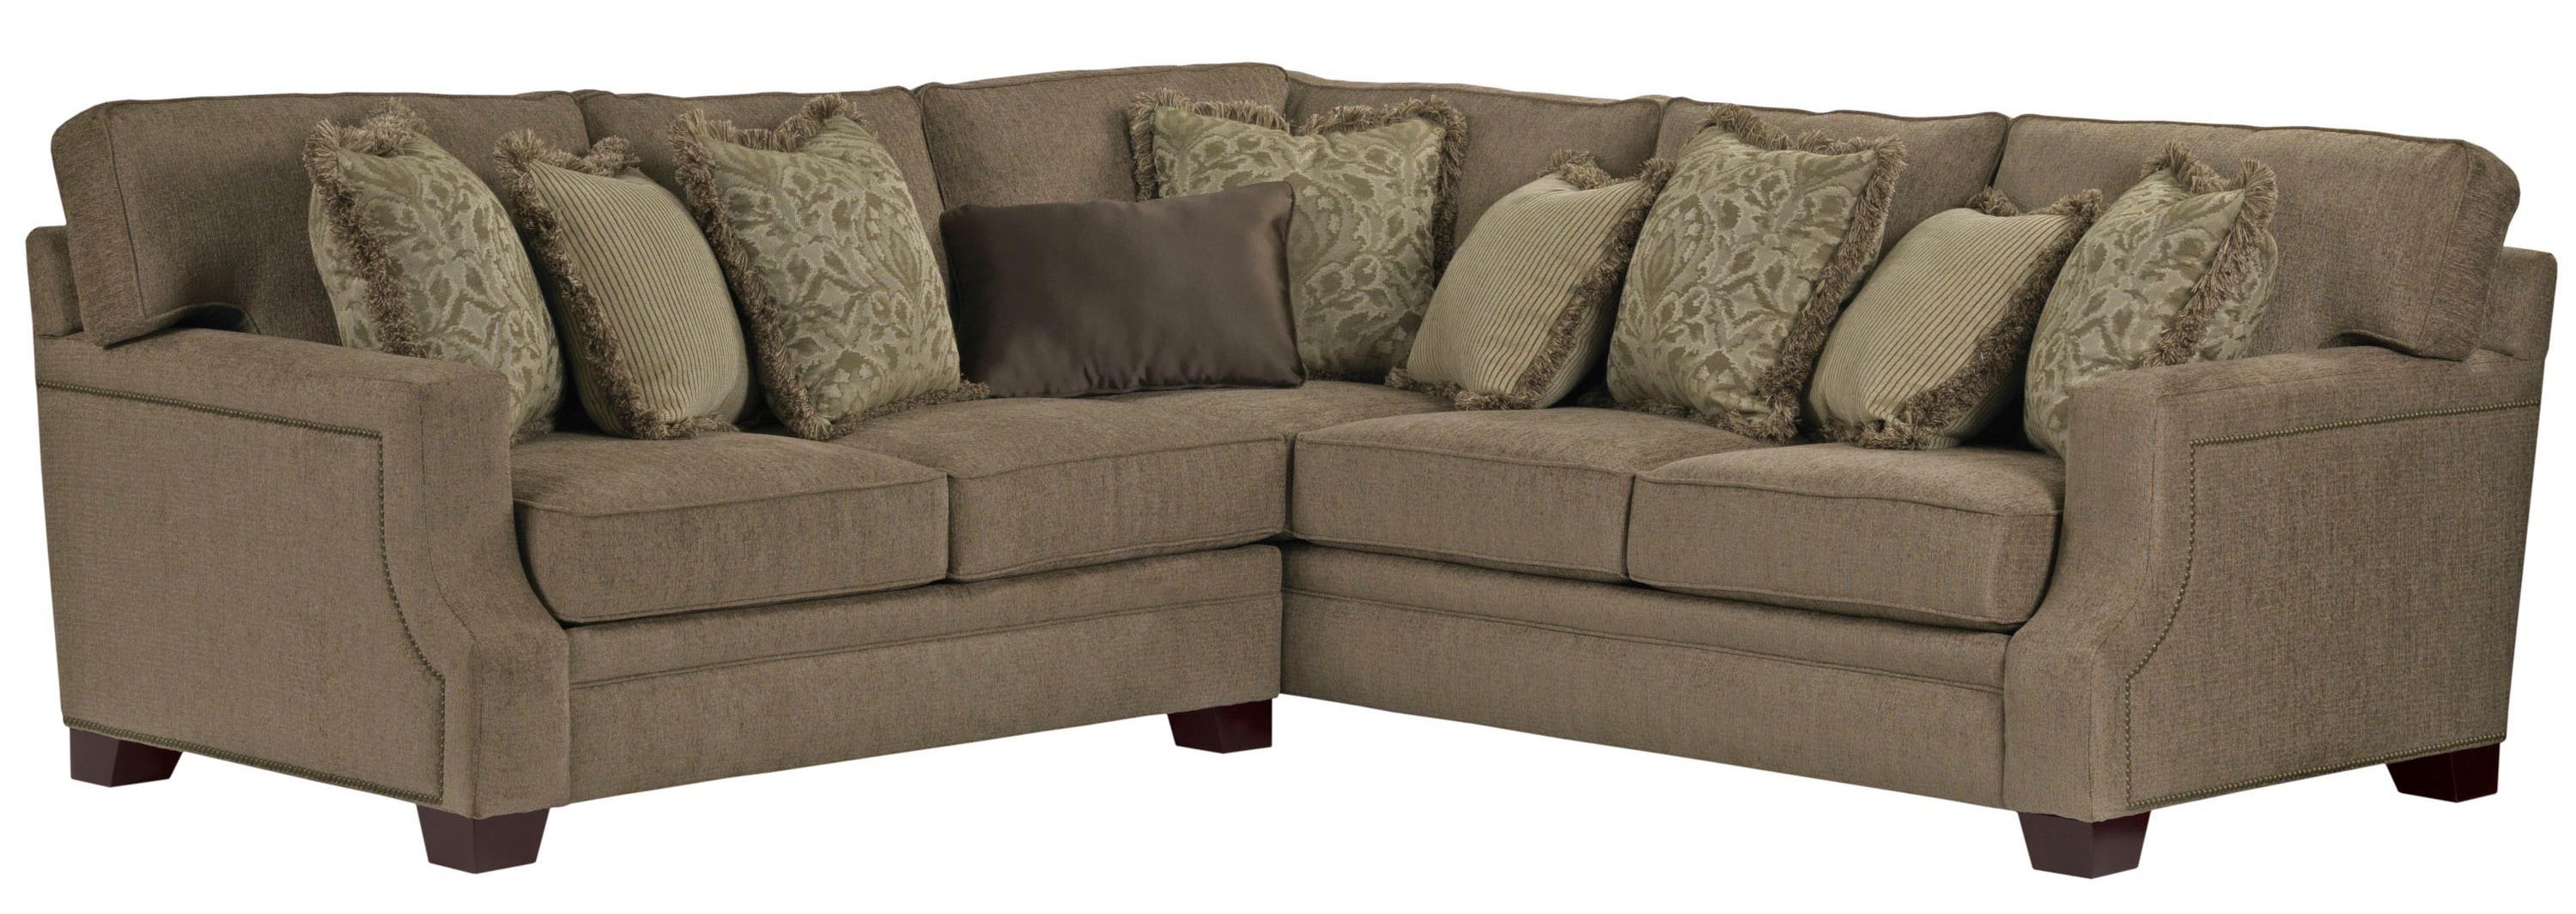 Fresh broyhill sectional sofas with chaise sectional sofas for Broyhill sectional sofa with chaise